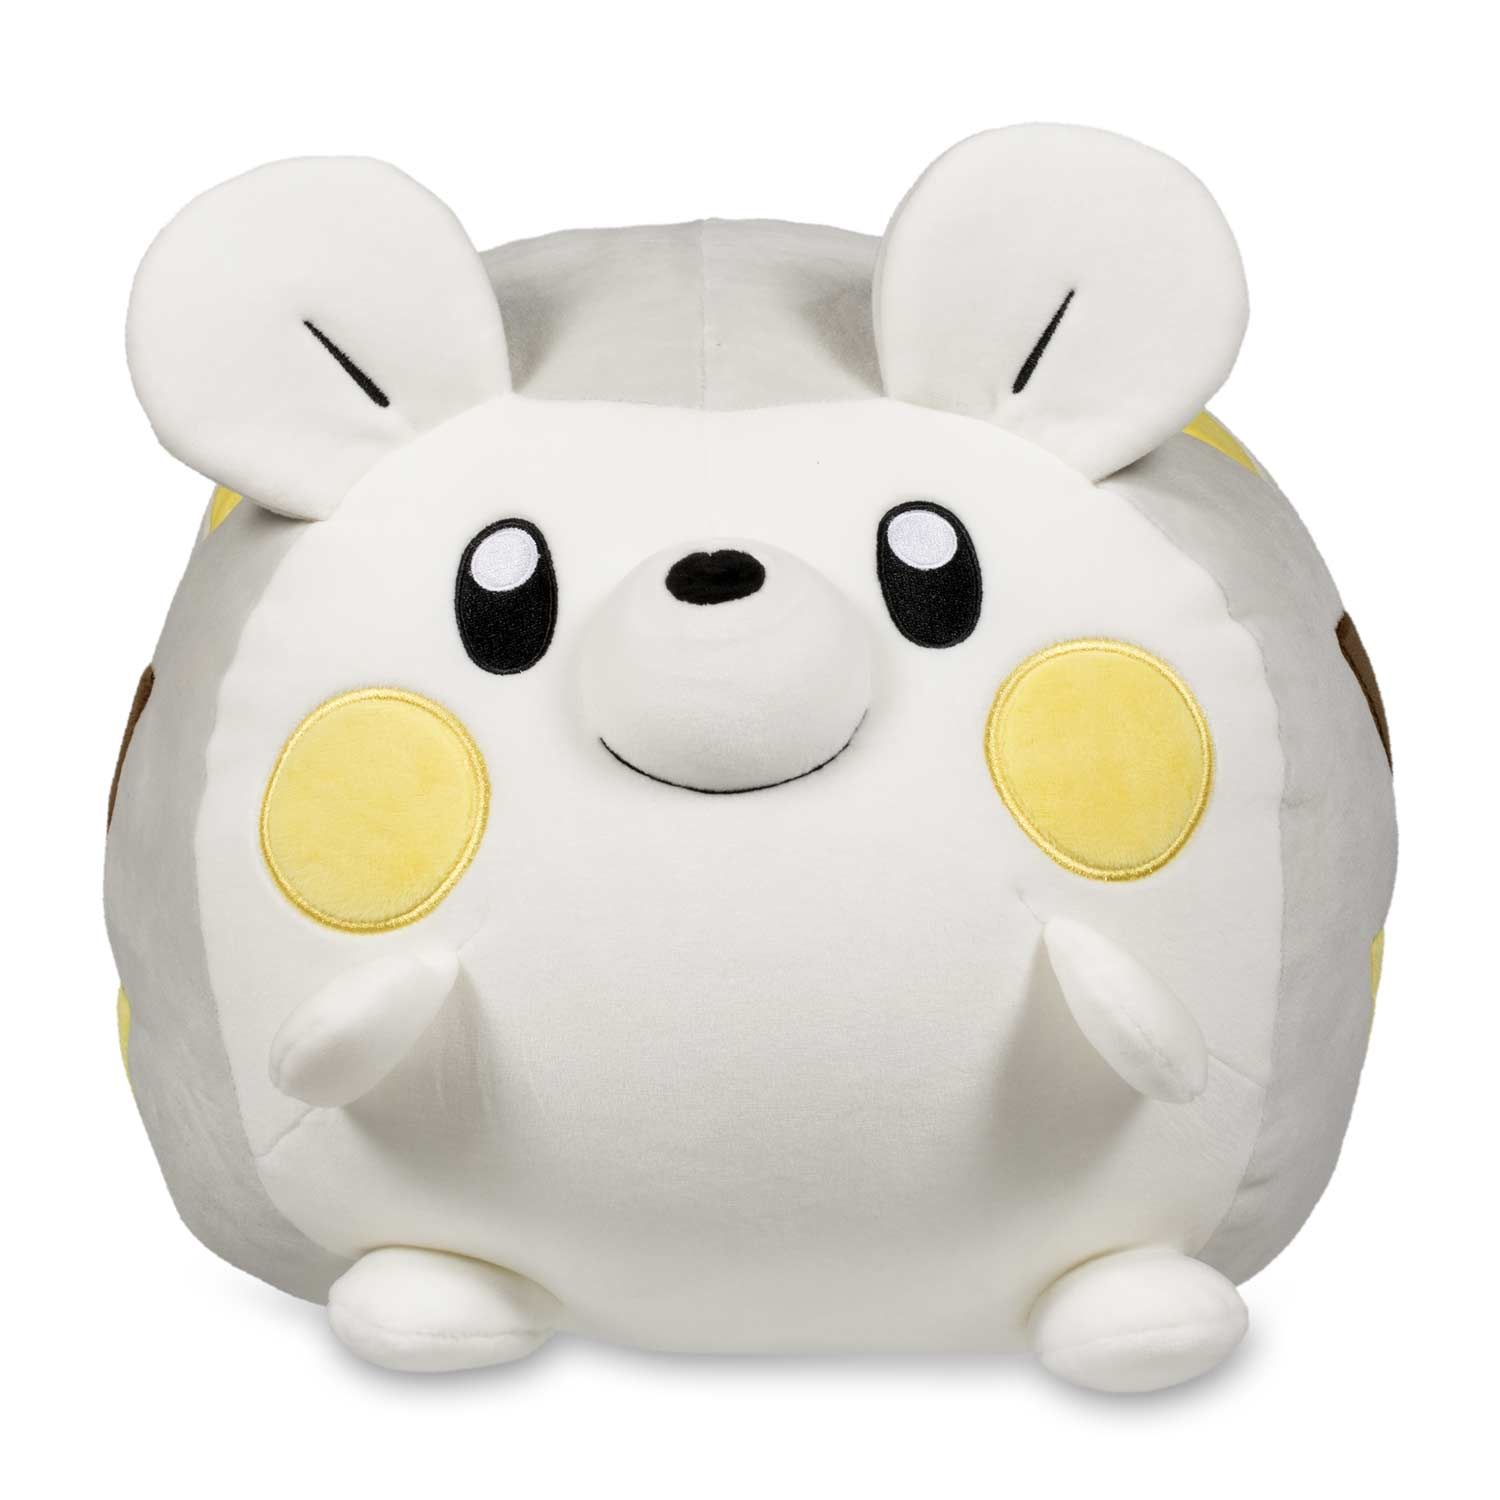 Official Togedemaru Squishy Plush Is Fully 10 Across And Stands